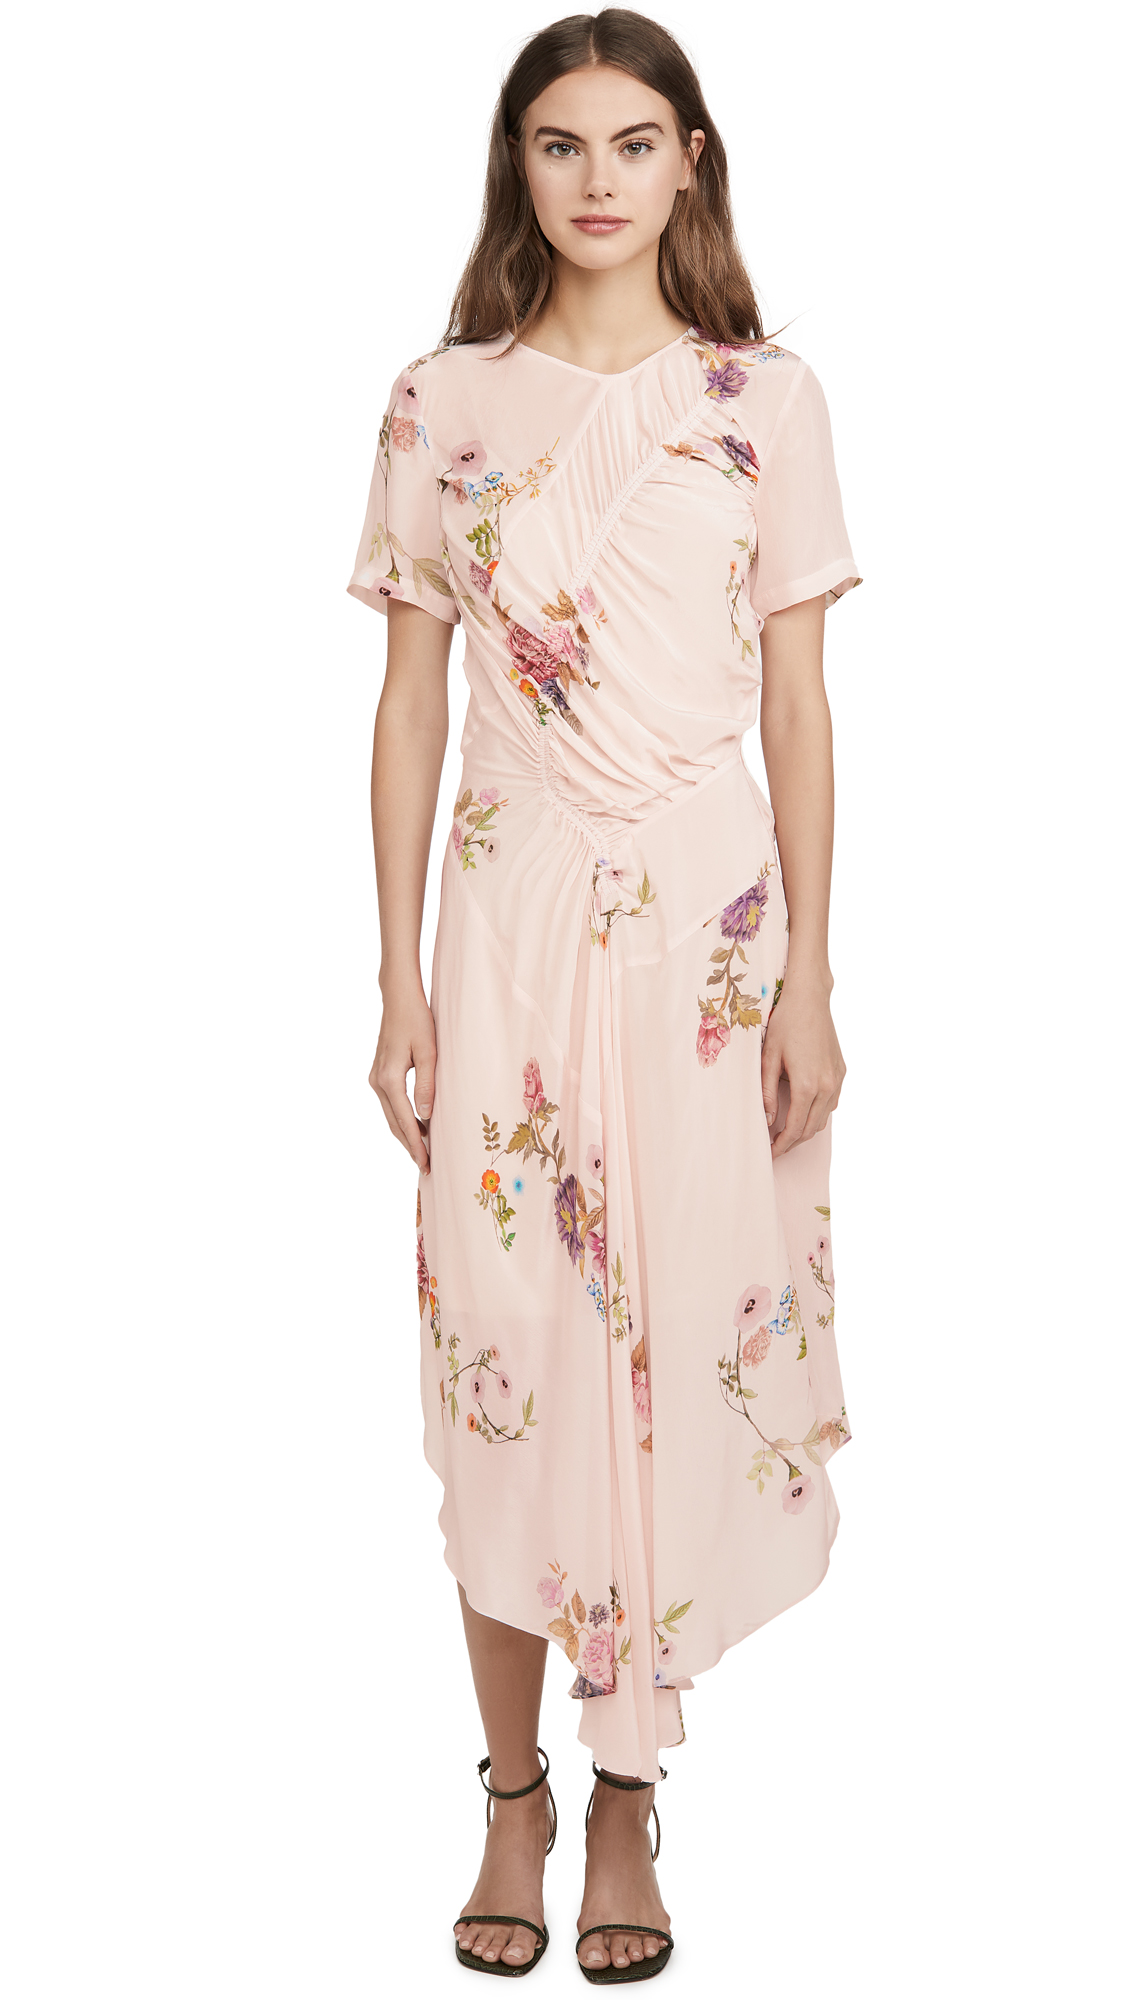 Preen By Thornton Bregazzi Preen Line Shae Dress - 50% Off Sale